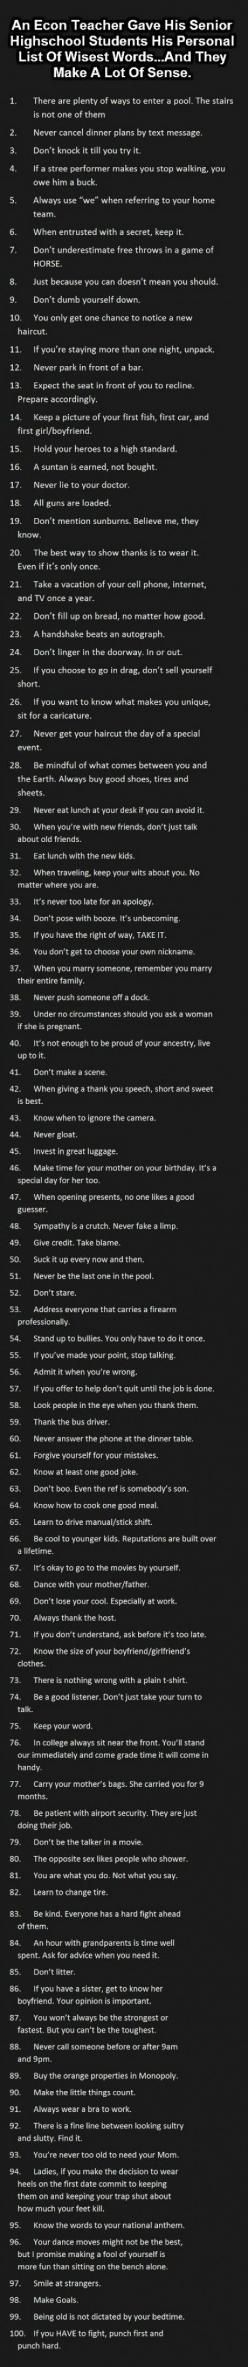 Wise words. Especially 4,8,18,21,33,38,46,60,63, & 81!! There all pretty good.: High School Quote, Life Advice Quote, Truth, Senior Year Quote, Funny Senior Quote, Good Advice, High School Senior Quote, High Schools, Wise Word